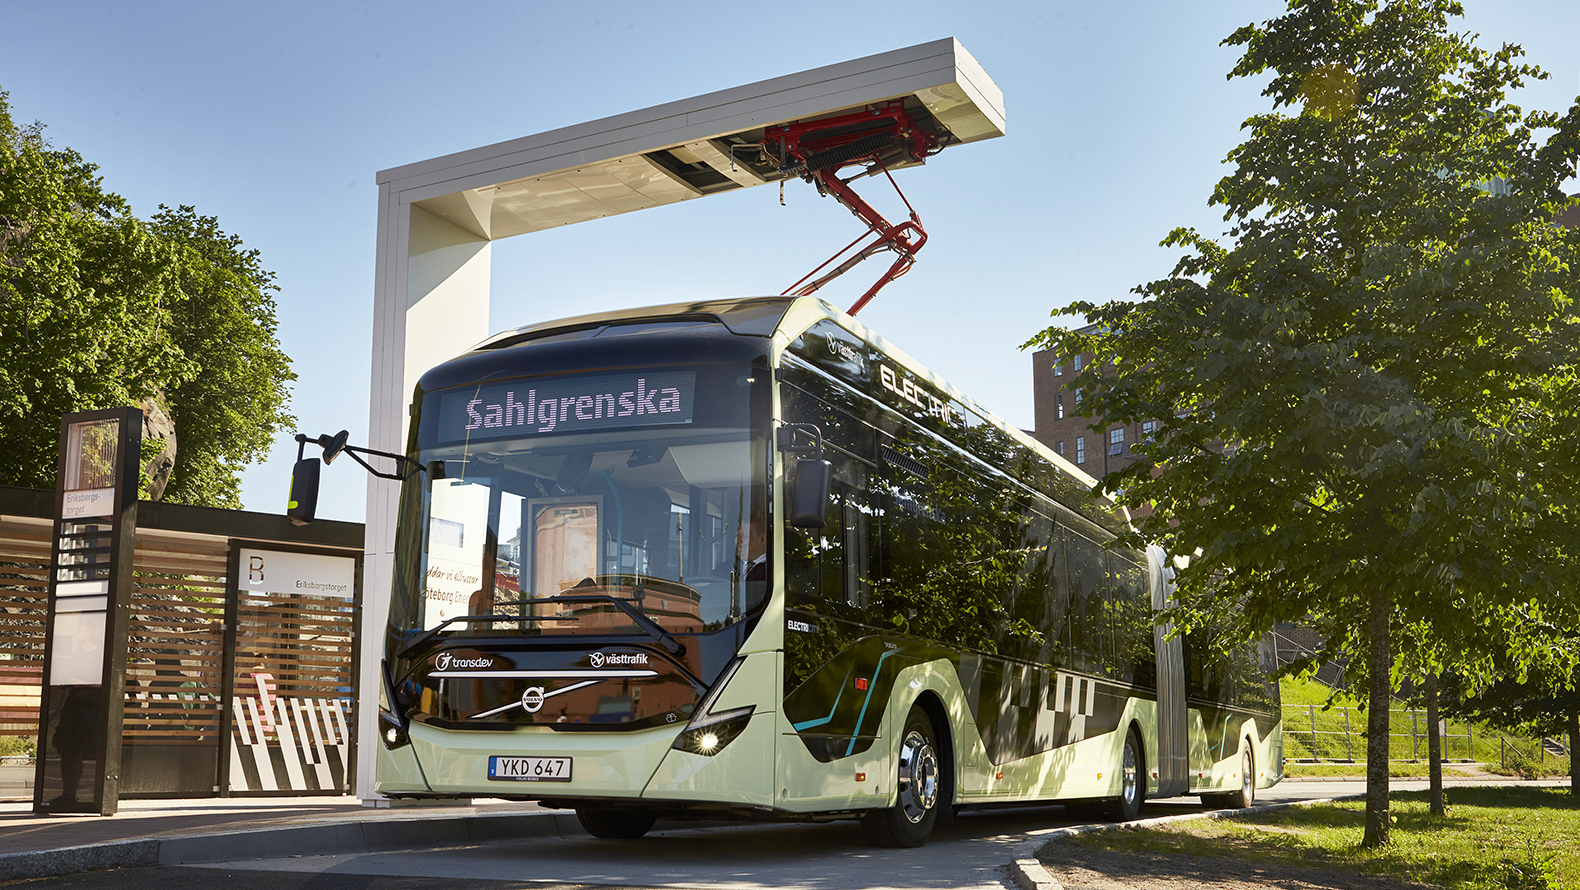 A Volvo bus, operated by Transdev is being charged by an ABB charger.